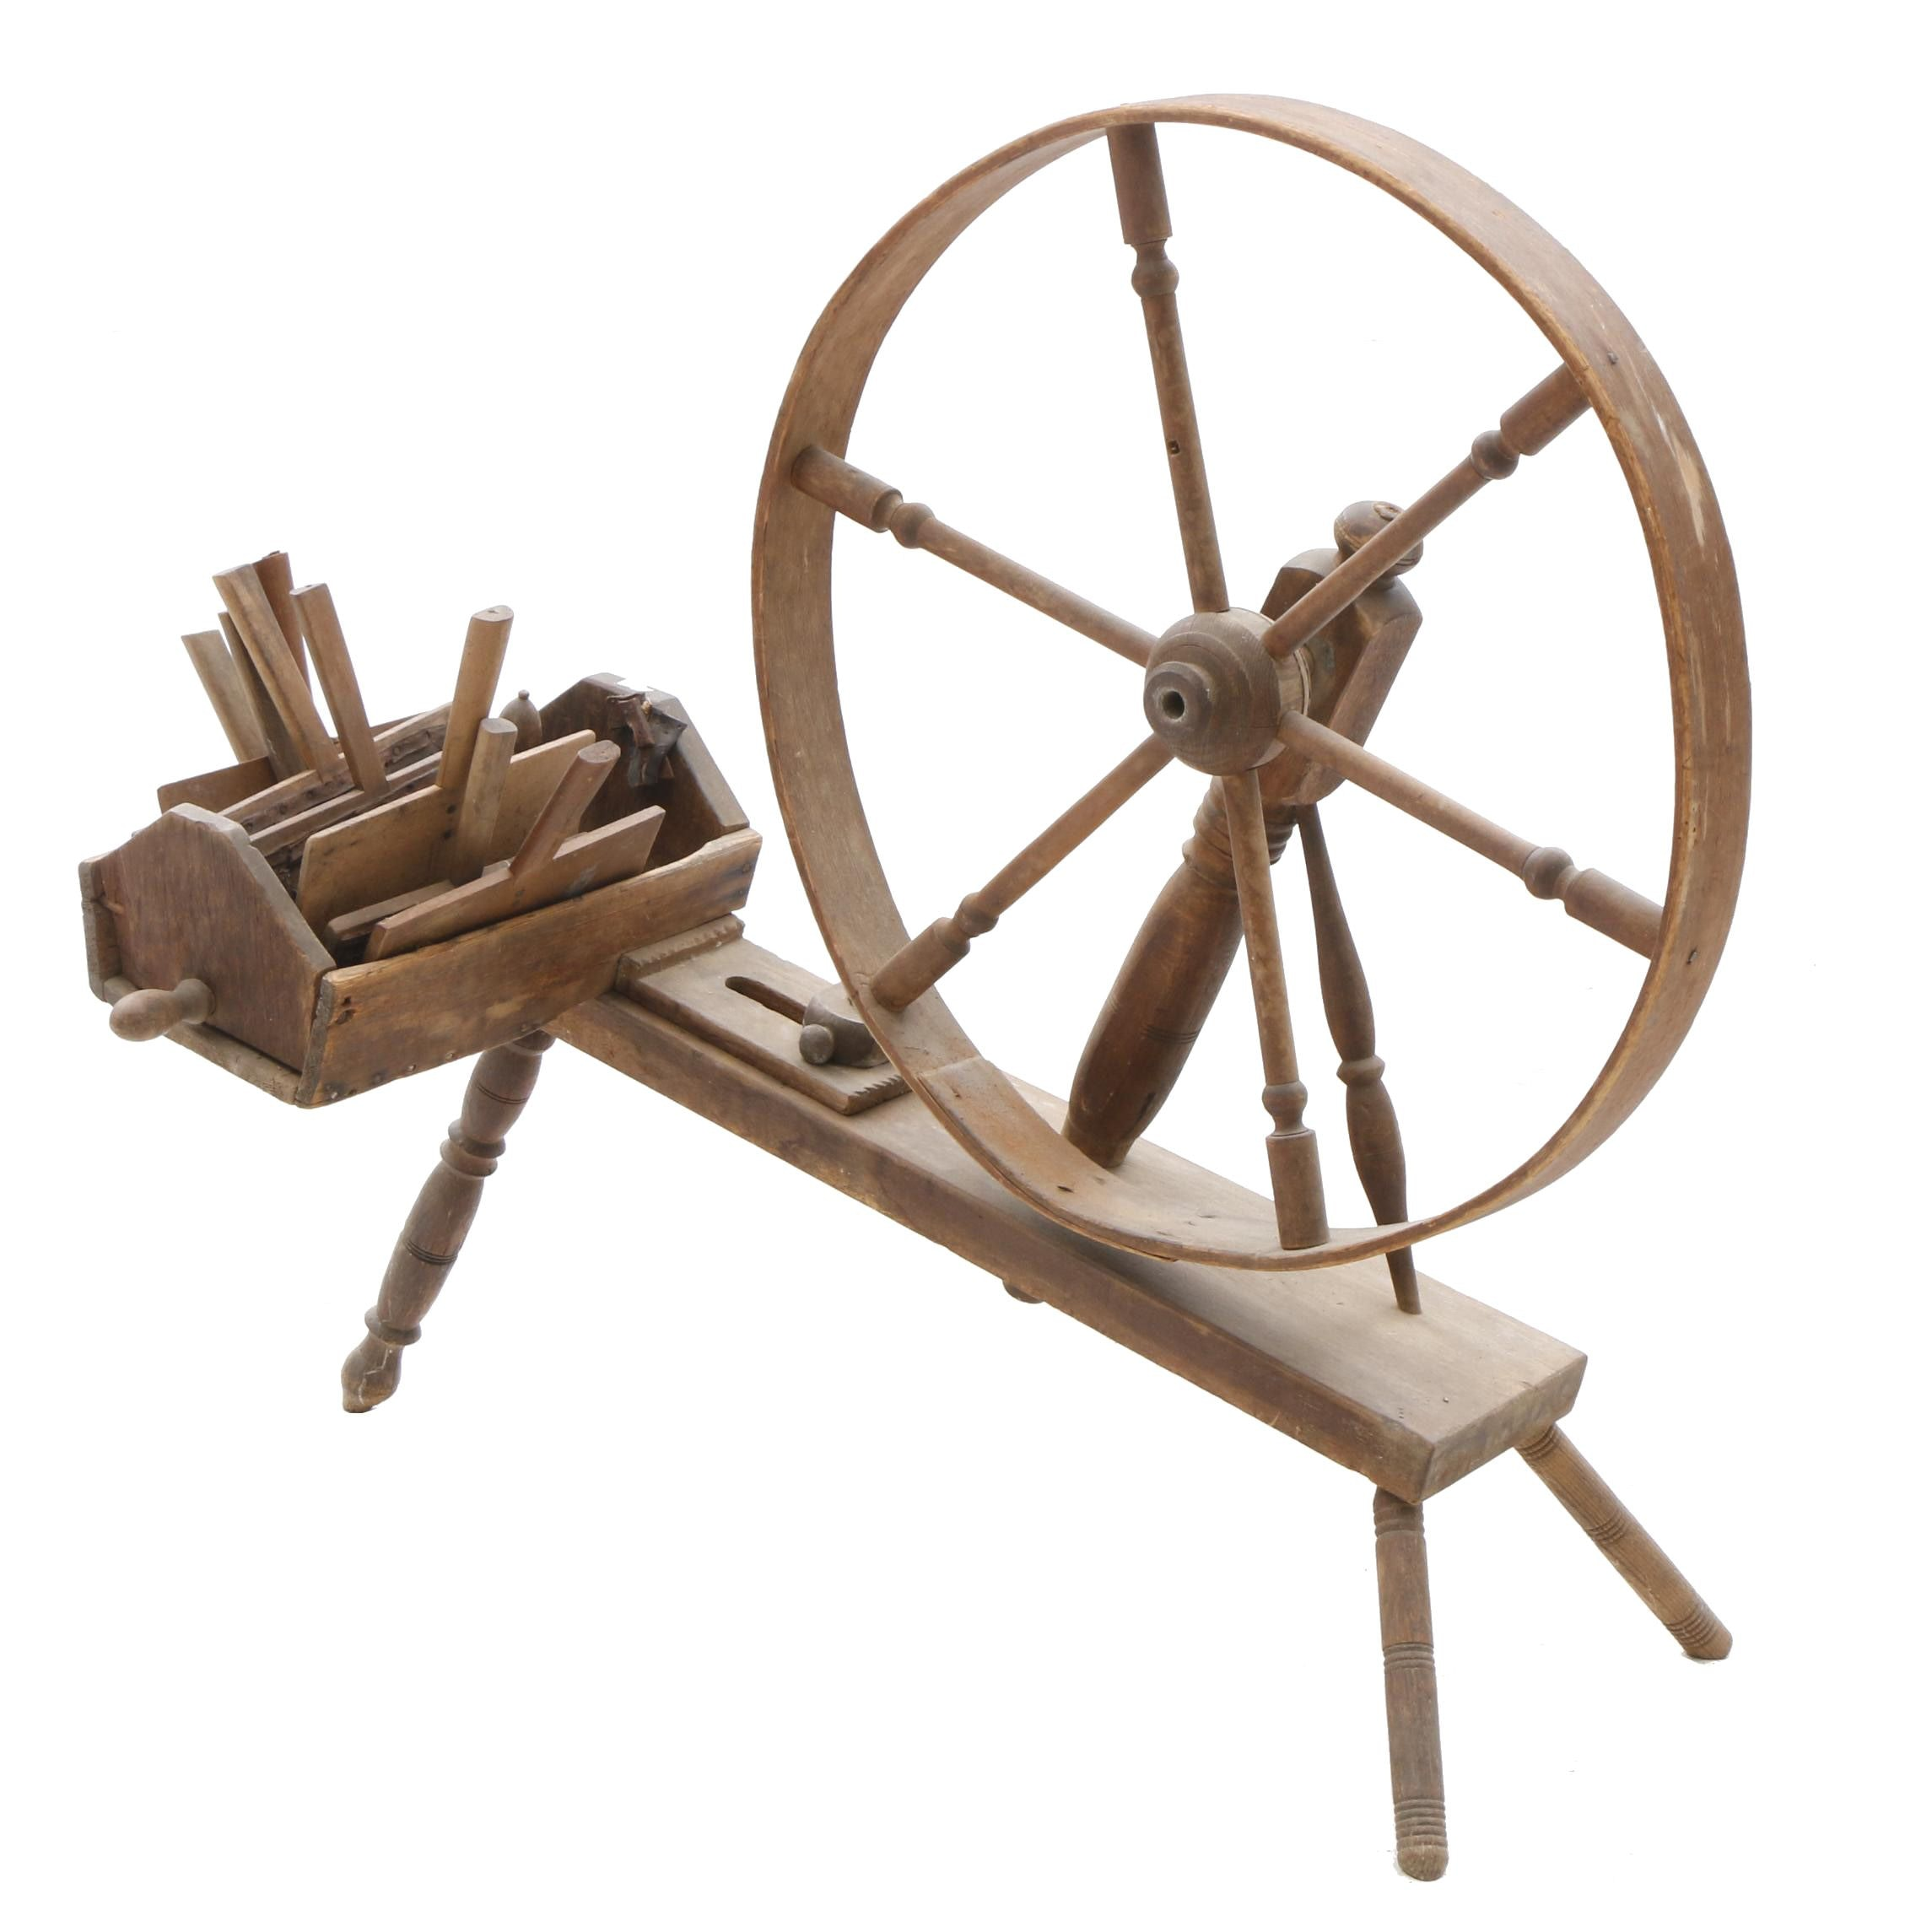 Spinning Wheel with Carding Paddles, Late 19th Century